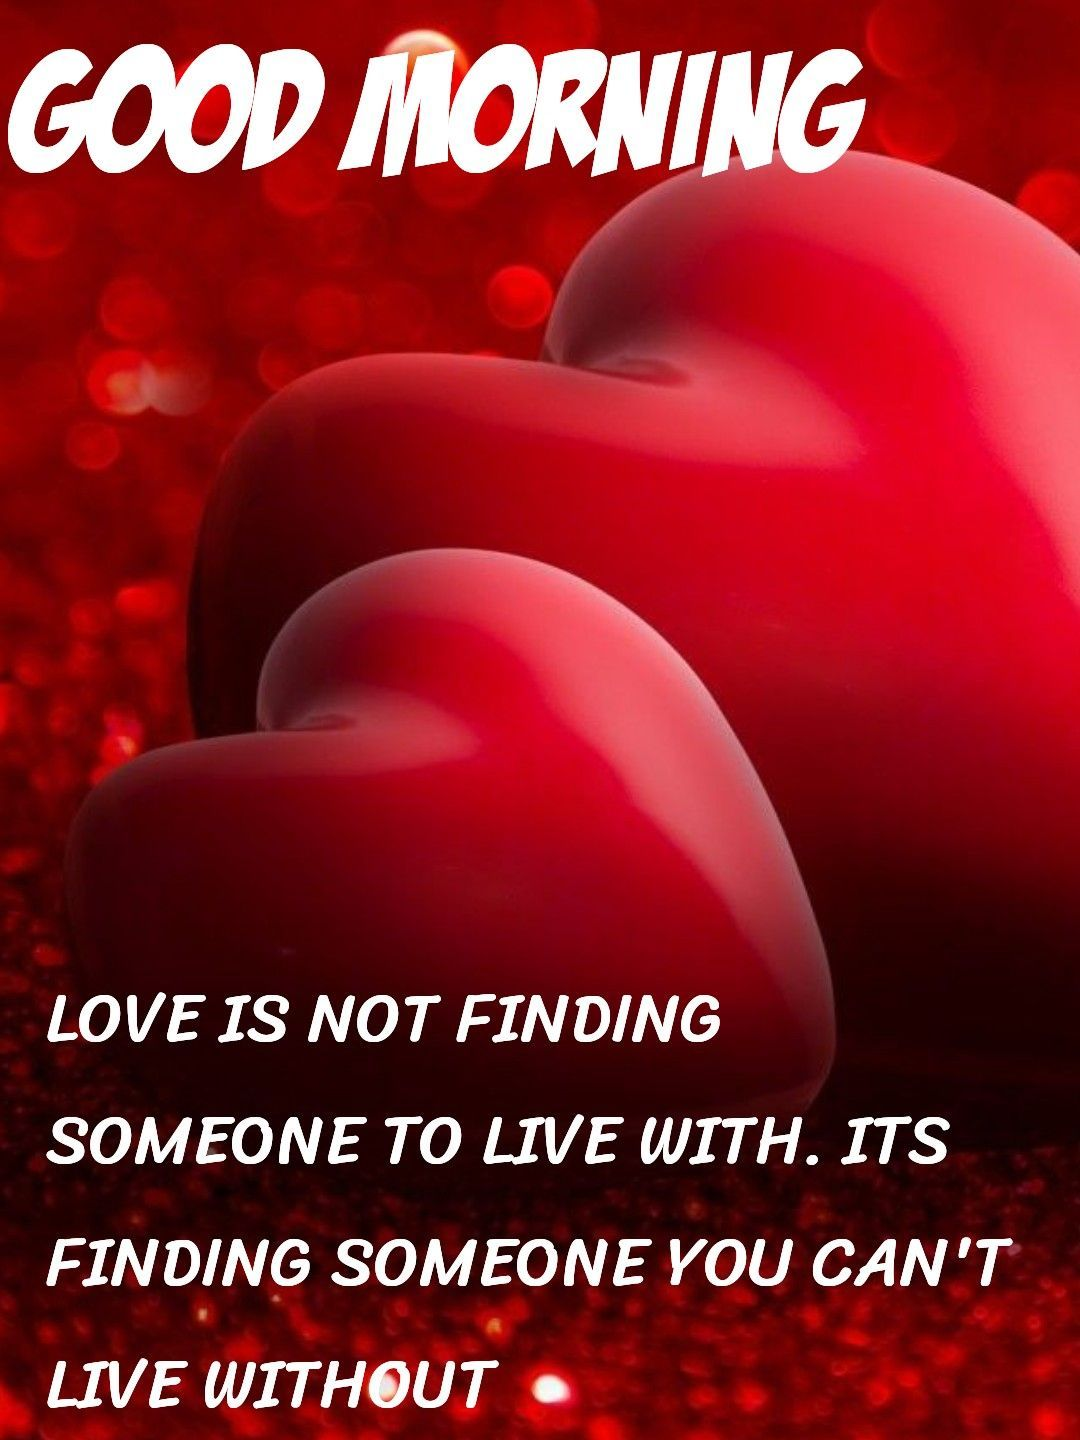 Good Morning Quote About Love Pictures, Photos, and Images for